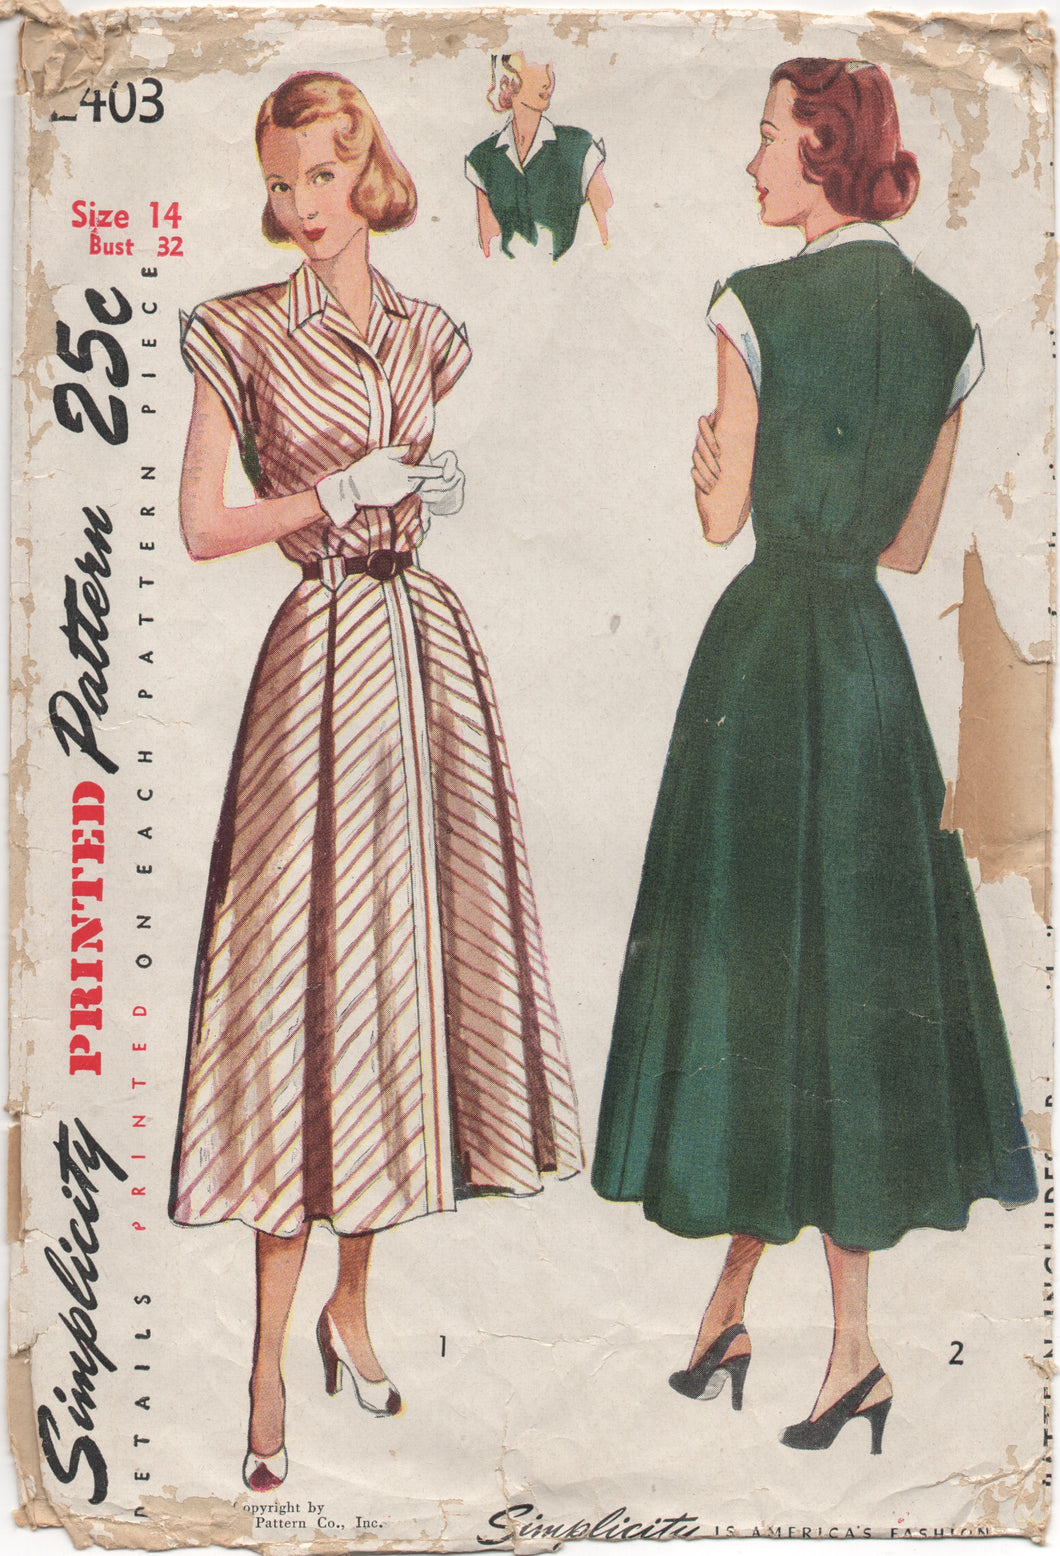 1940's Simplicity One Piece Dress with Tab front - Bust 32